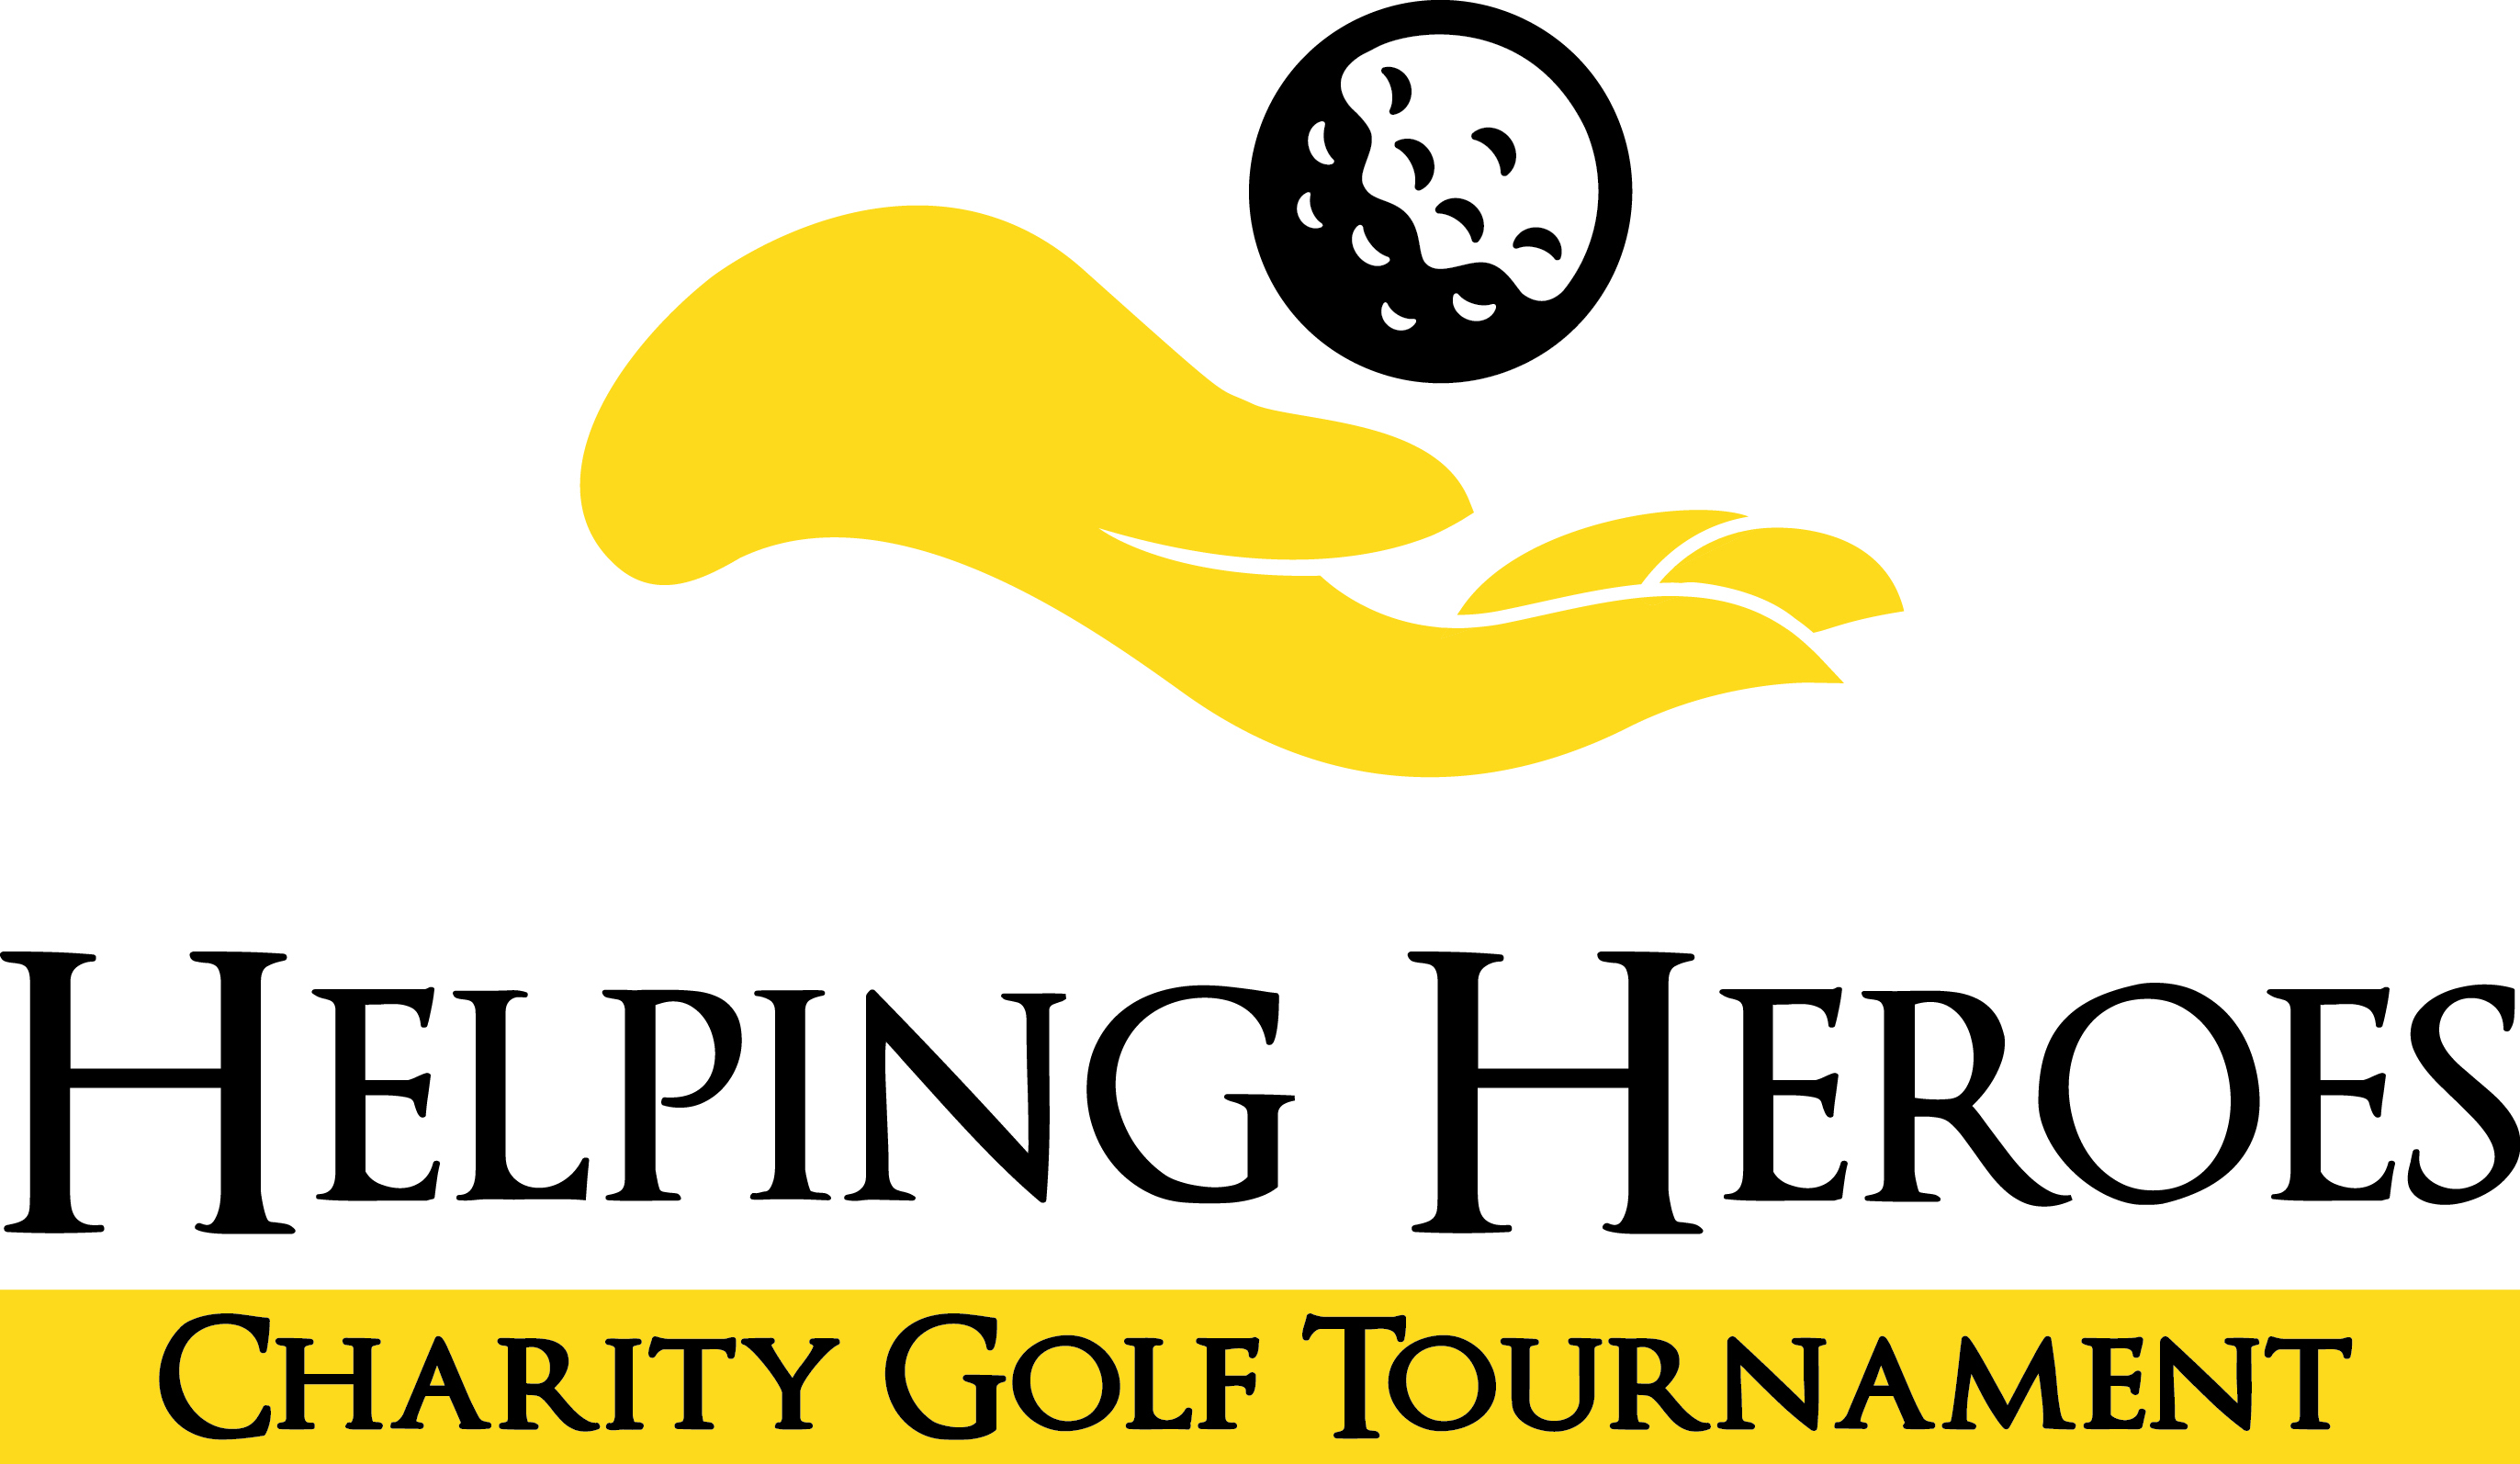 Childrens S Home Society Charity Golf